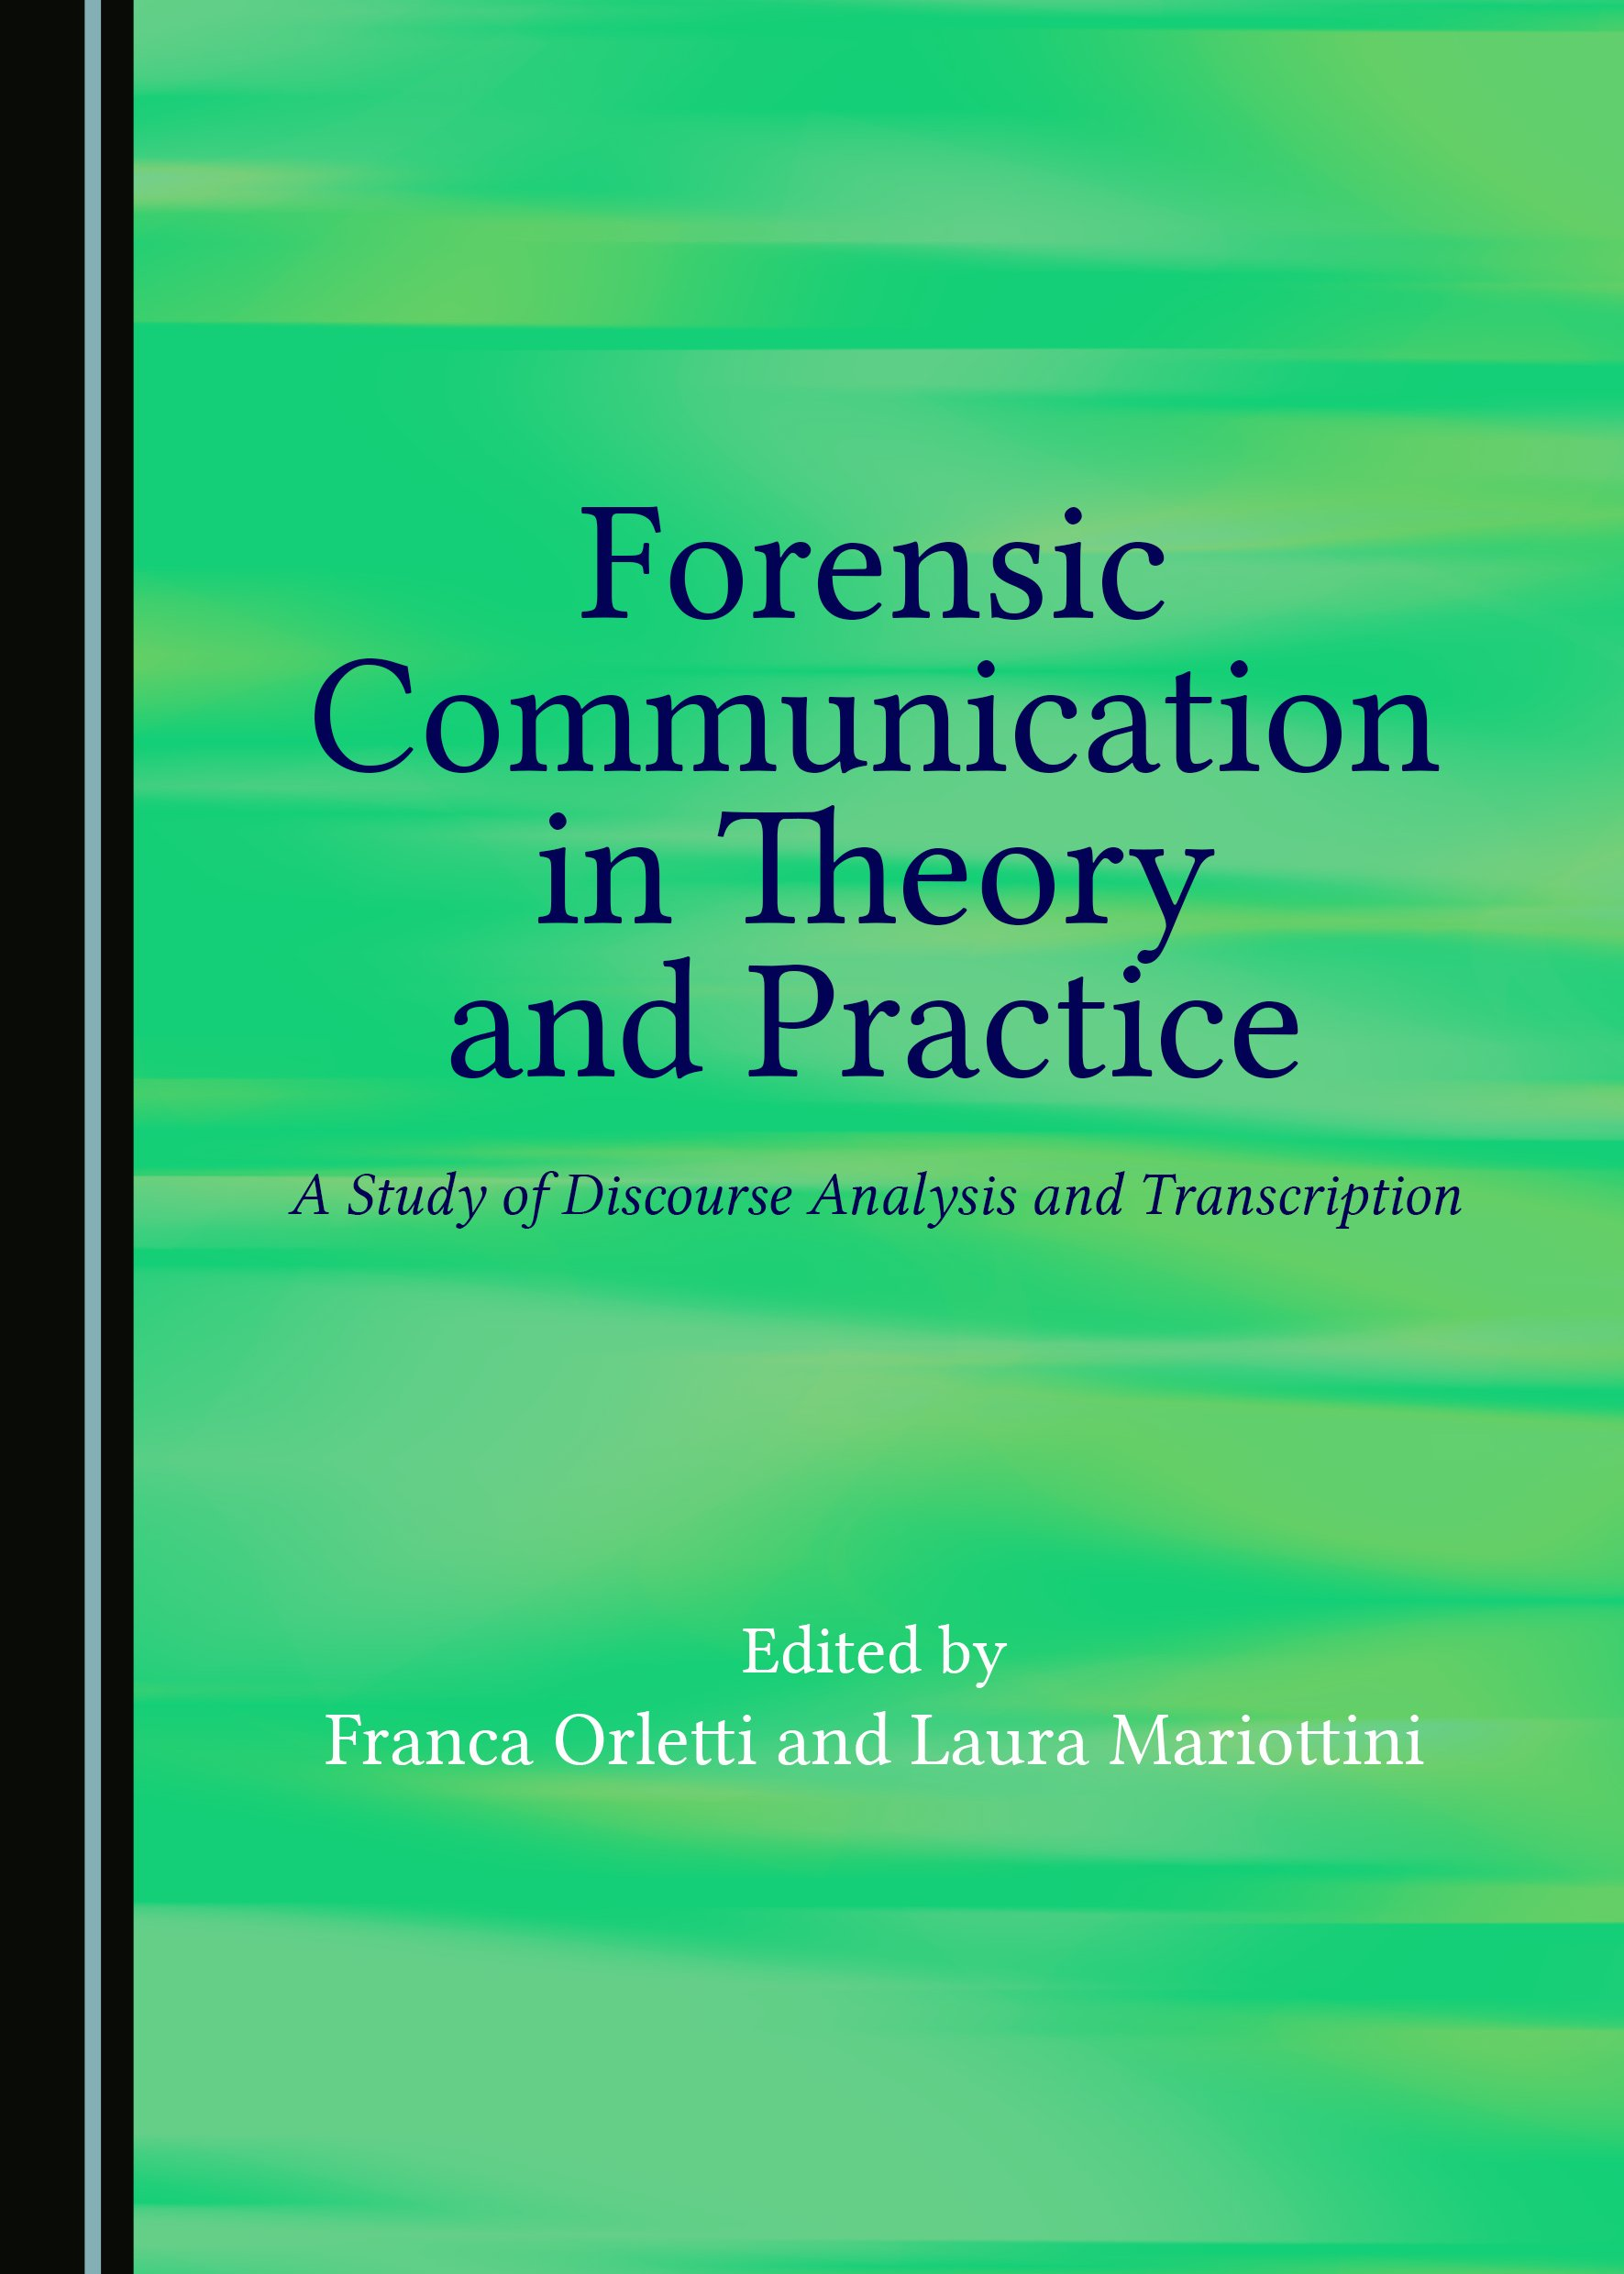 Forensic Communication in Theory and Practice: A Study of Discourse Analysis and Transcription